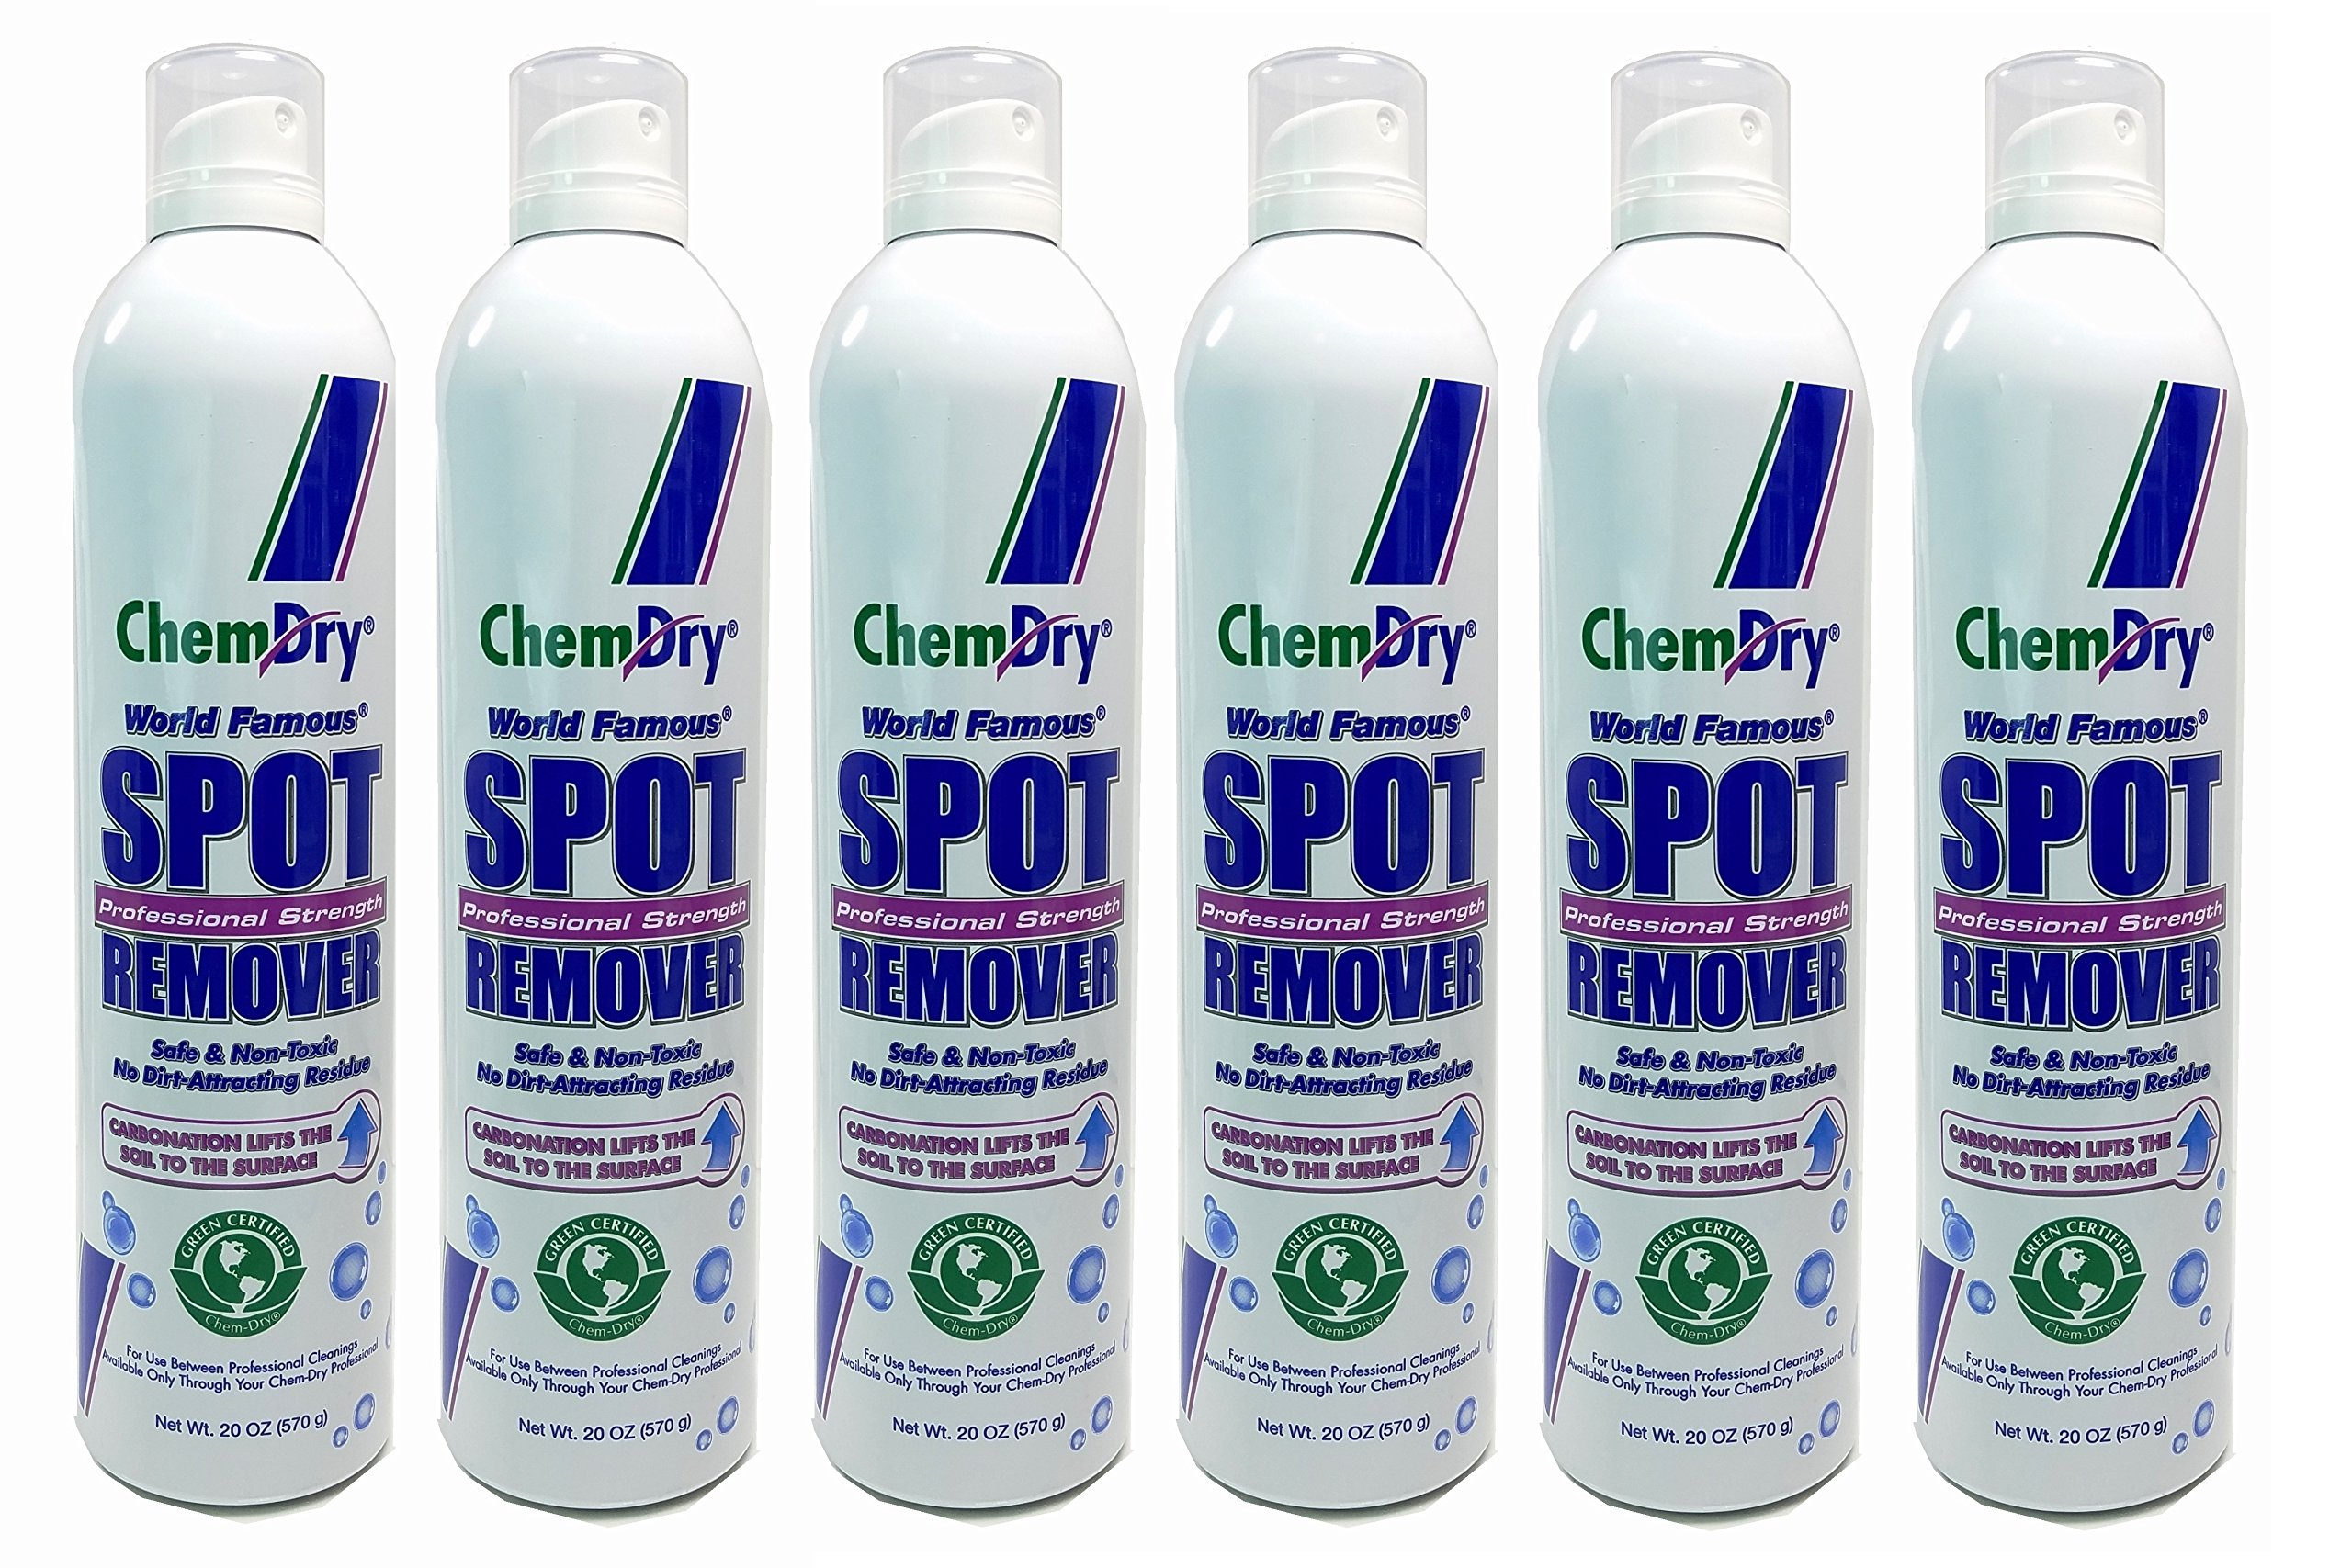 Chem-Dry Professional Strength Spot Remover 20 Oz (6 Pack) by Chem-Dry